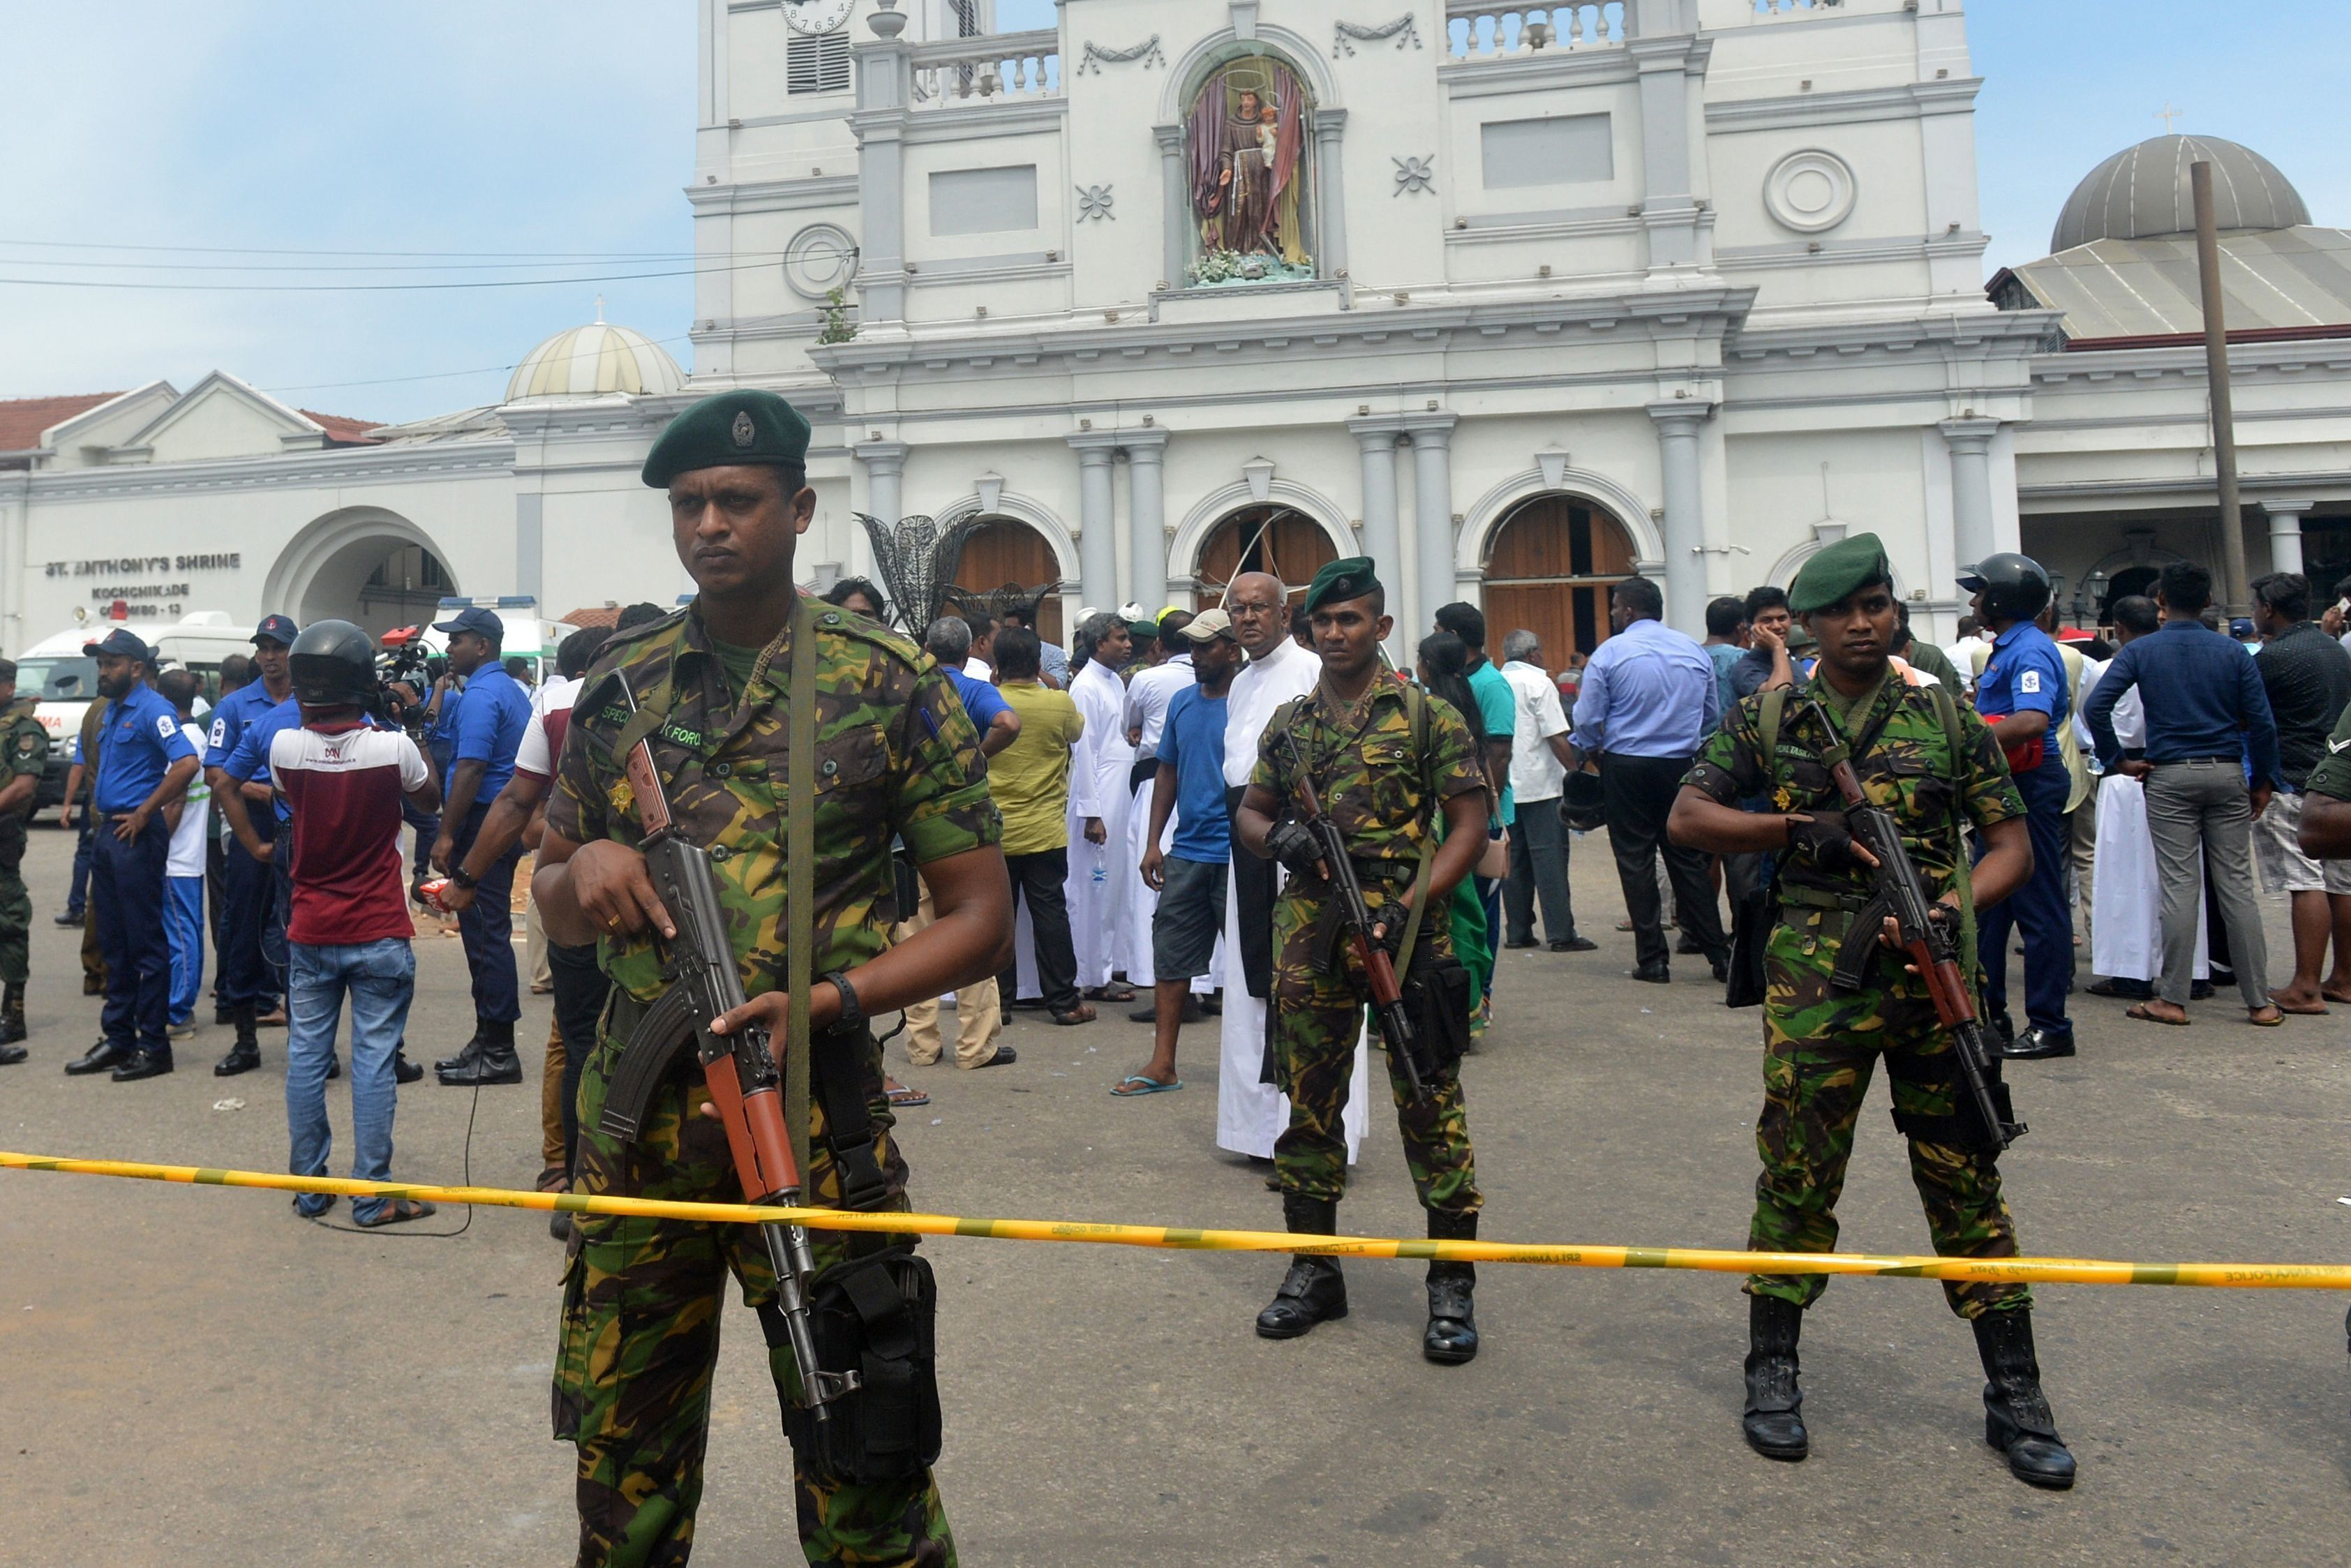 TOPSHOT - Sri Lankan security personnel keep watch outside the church premises following a blast at the St. Anthony's Shrine in Kochchikade in Colombo on April 21, 2019. - At least 137 people were killed in Sri Lanka on April 21, police sources told AFP, when a string of blasts ripped through high-end hotels and churches as worshippers attended Easter services. (Photo by ISHARA S. KODIKARA / AFP)        (Photo credit should read ISHARA S. KODIKARA/AFP/Getty Images)